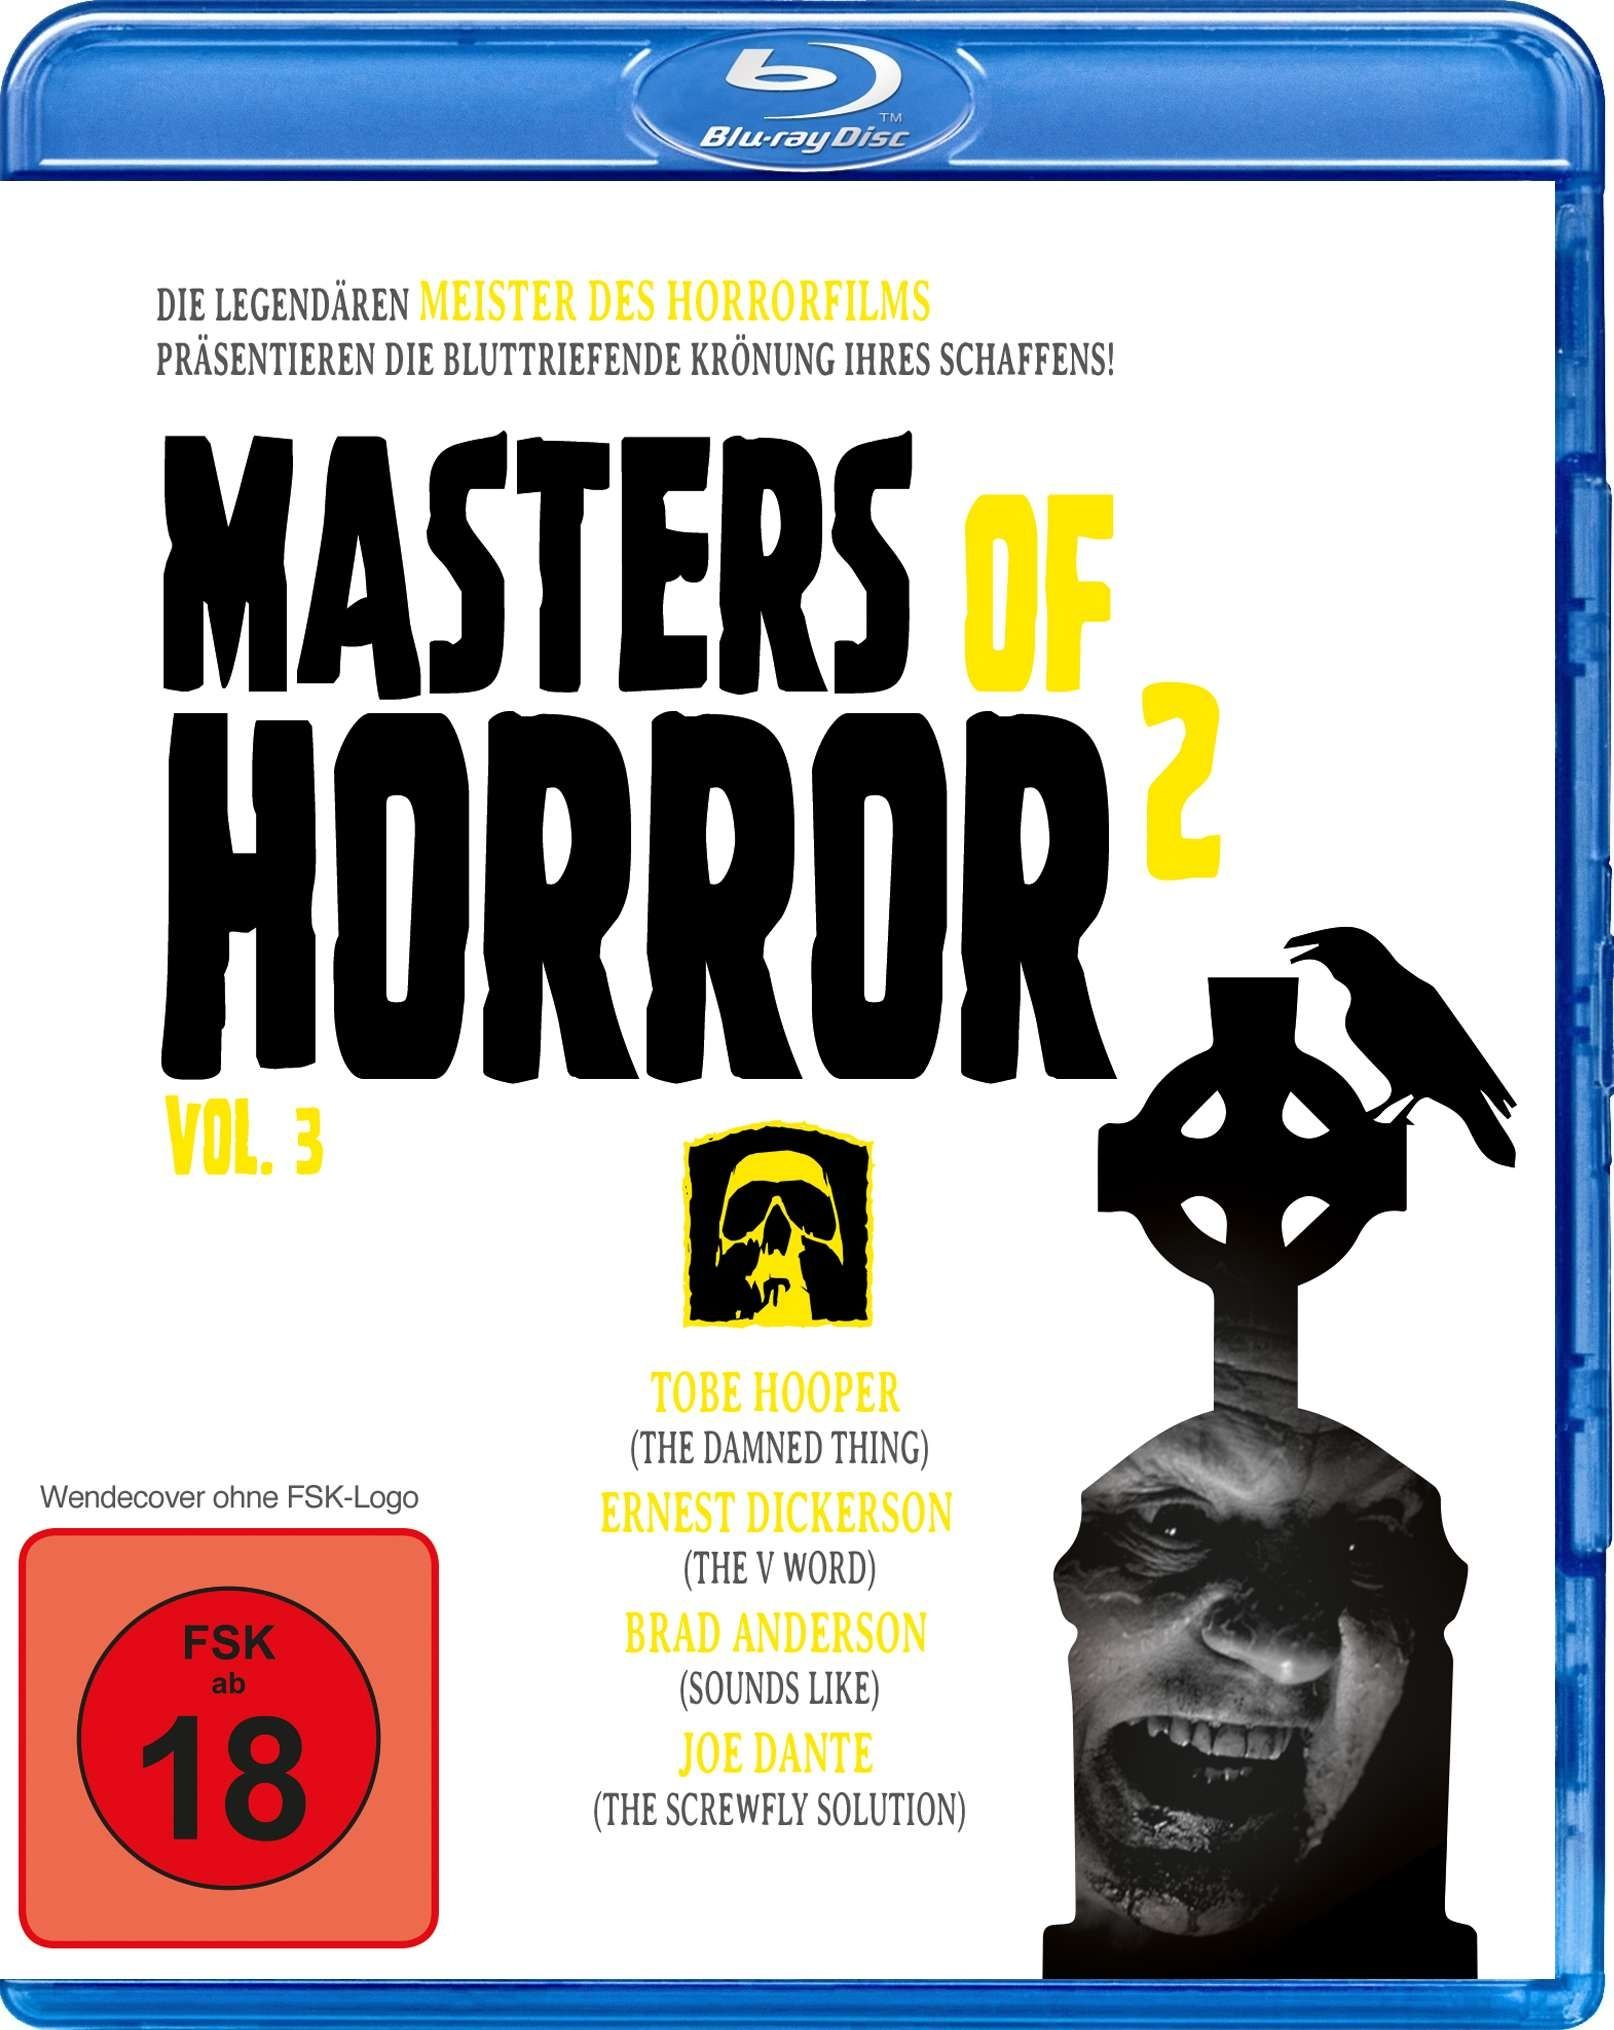 Masters of Horror 2 Vol. 3: The Damned Thing / The V Word / Sounds Like / The Screwfly Solution (BLURAY)